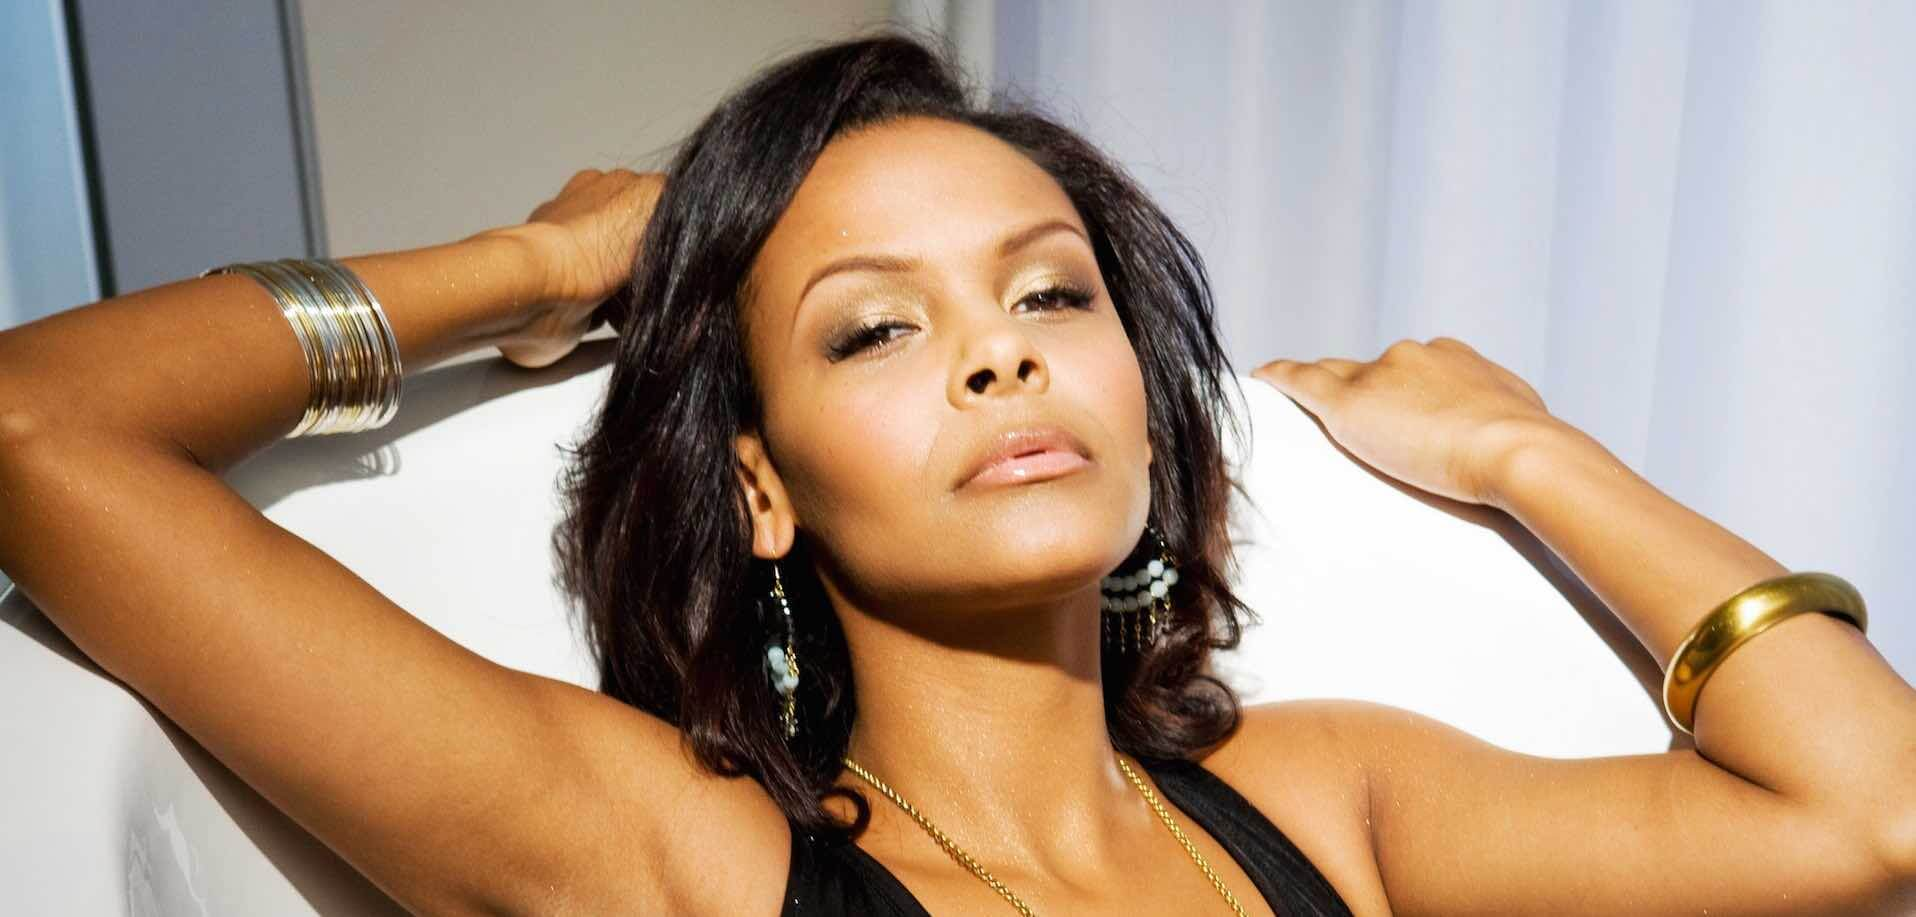 Fotos Samantha Mumba nudes (52 photos), Ass, Leaked, Instagram, in bikini 2018